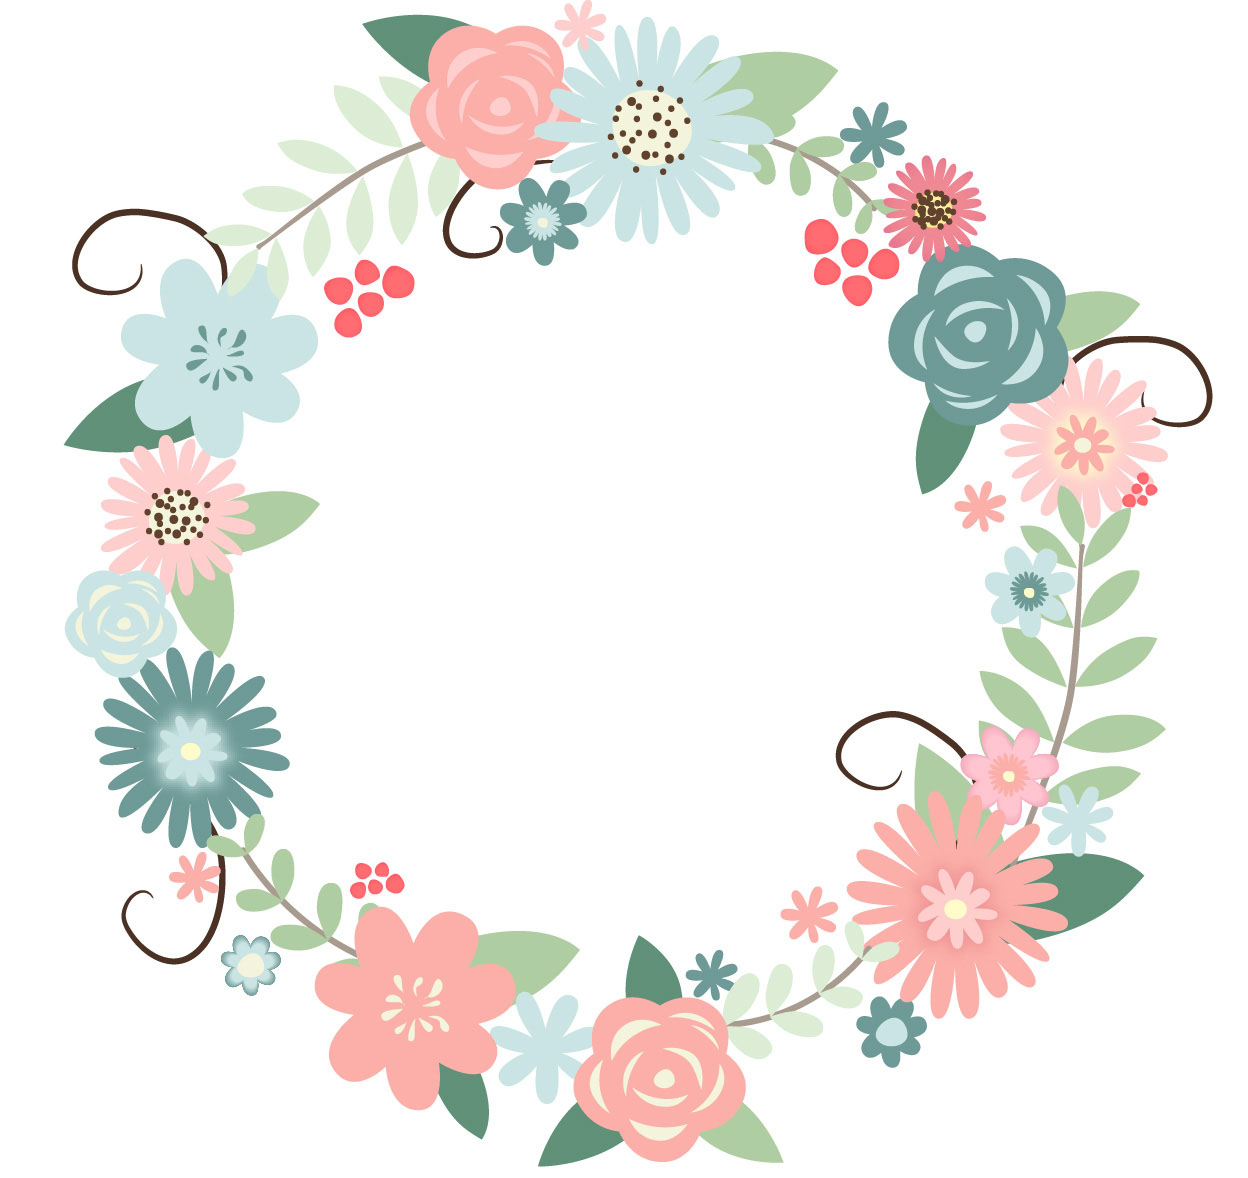 Wreath of flower clipart png image black and white Clipart wreath carnation flowers png - ClipartFest image black and white